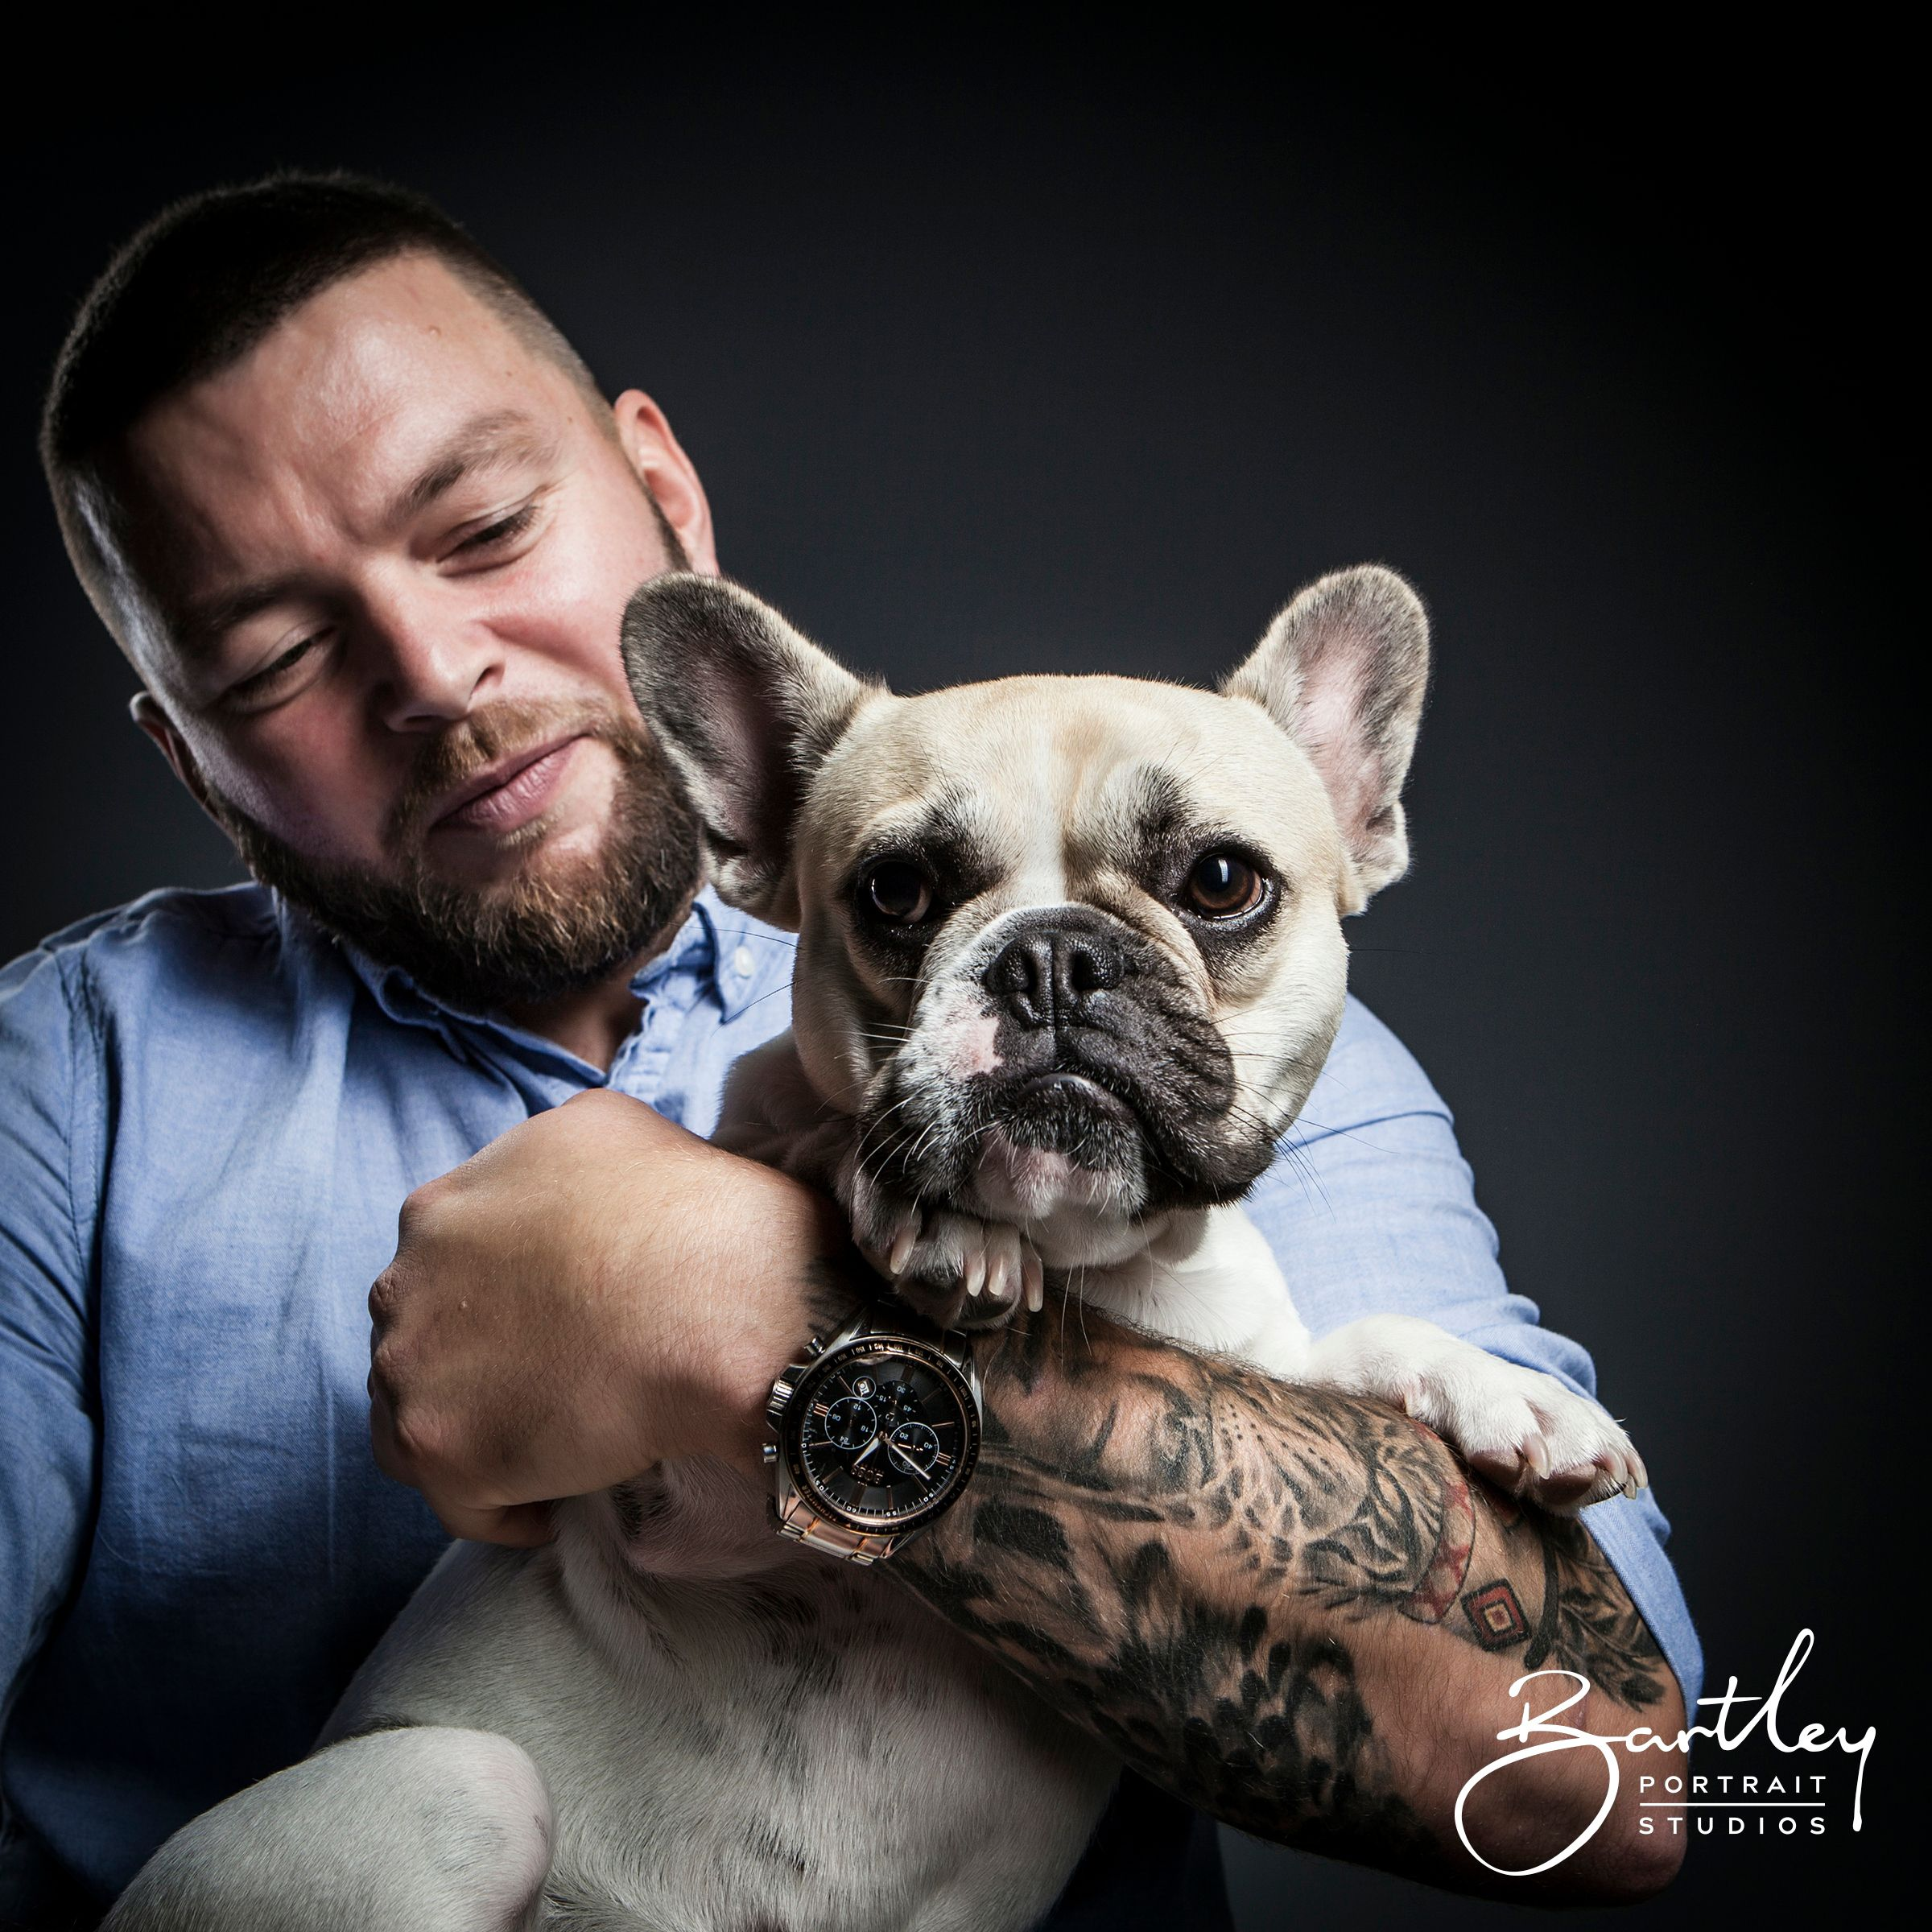 Man S Best Friend Man With Tattoos Posing With Cute Dog In